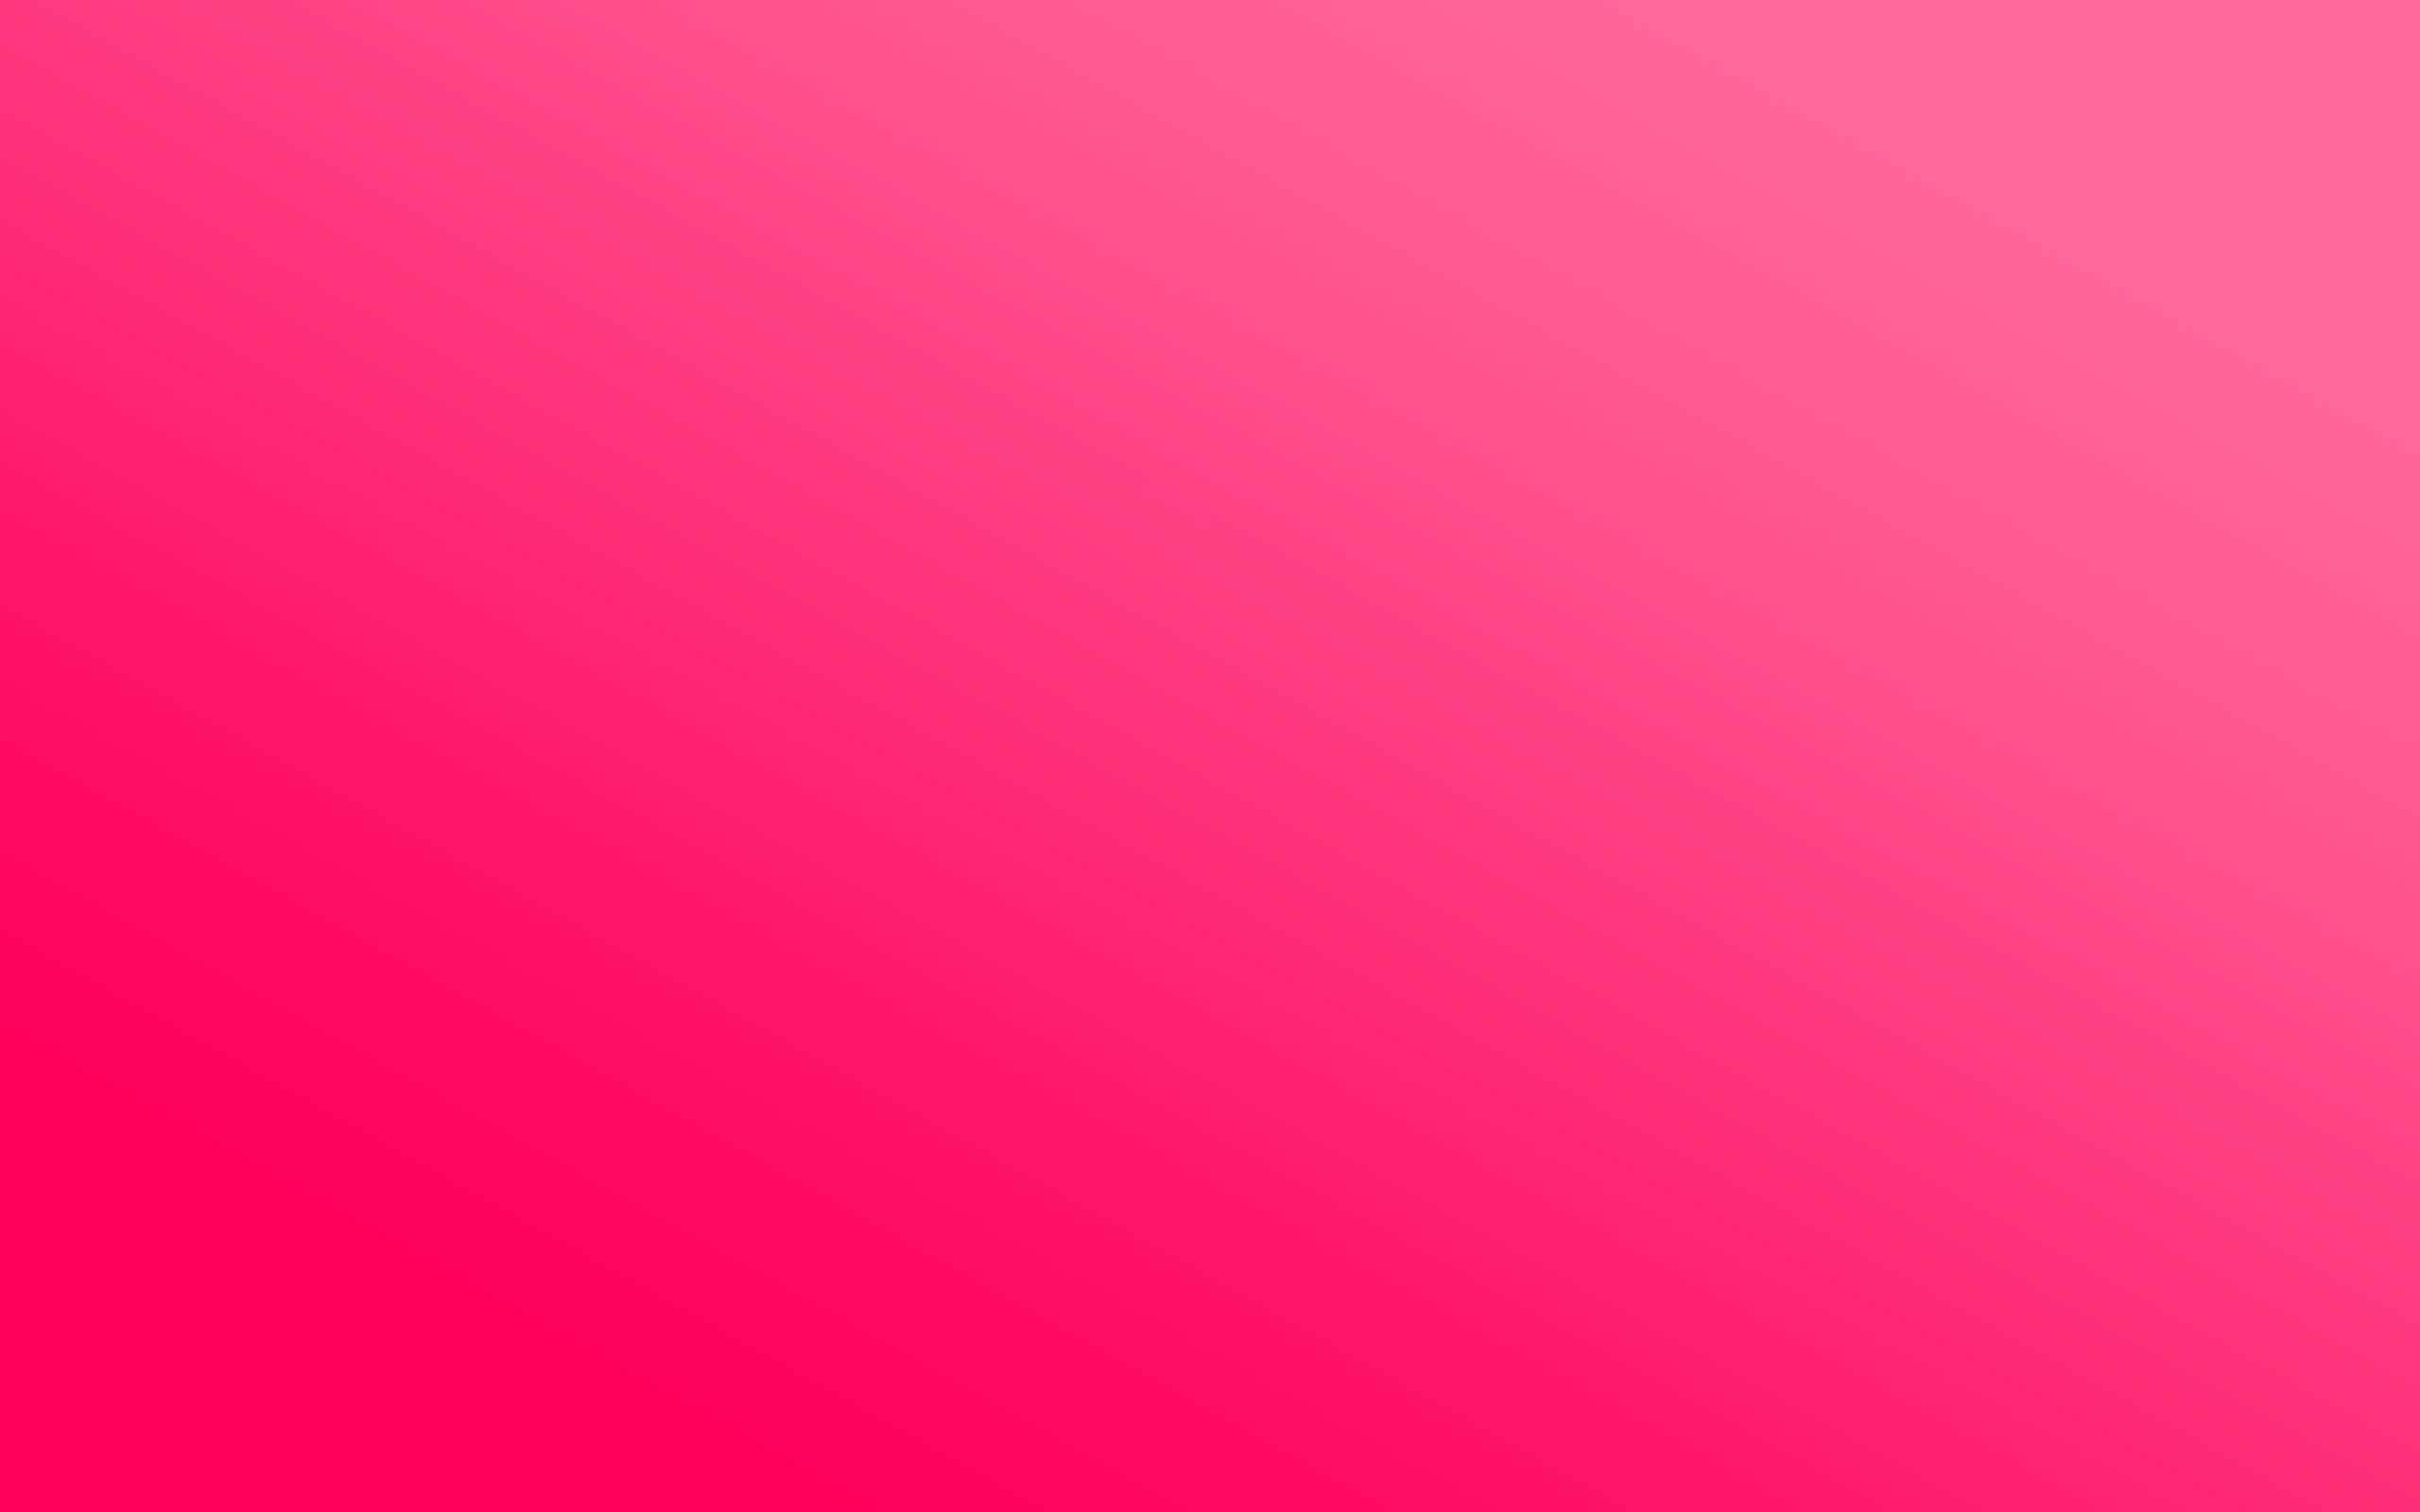 Rose Pink Solid Wallpaper